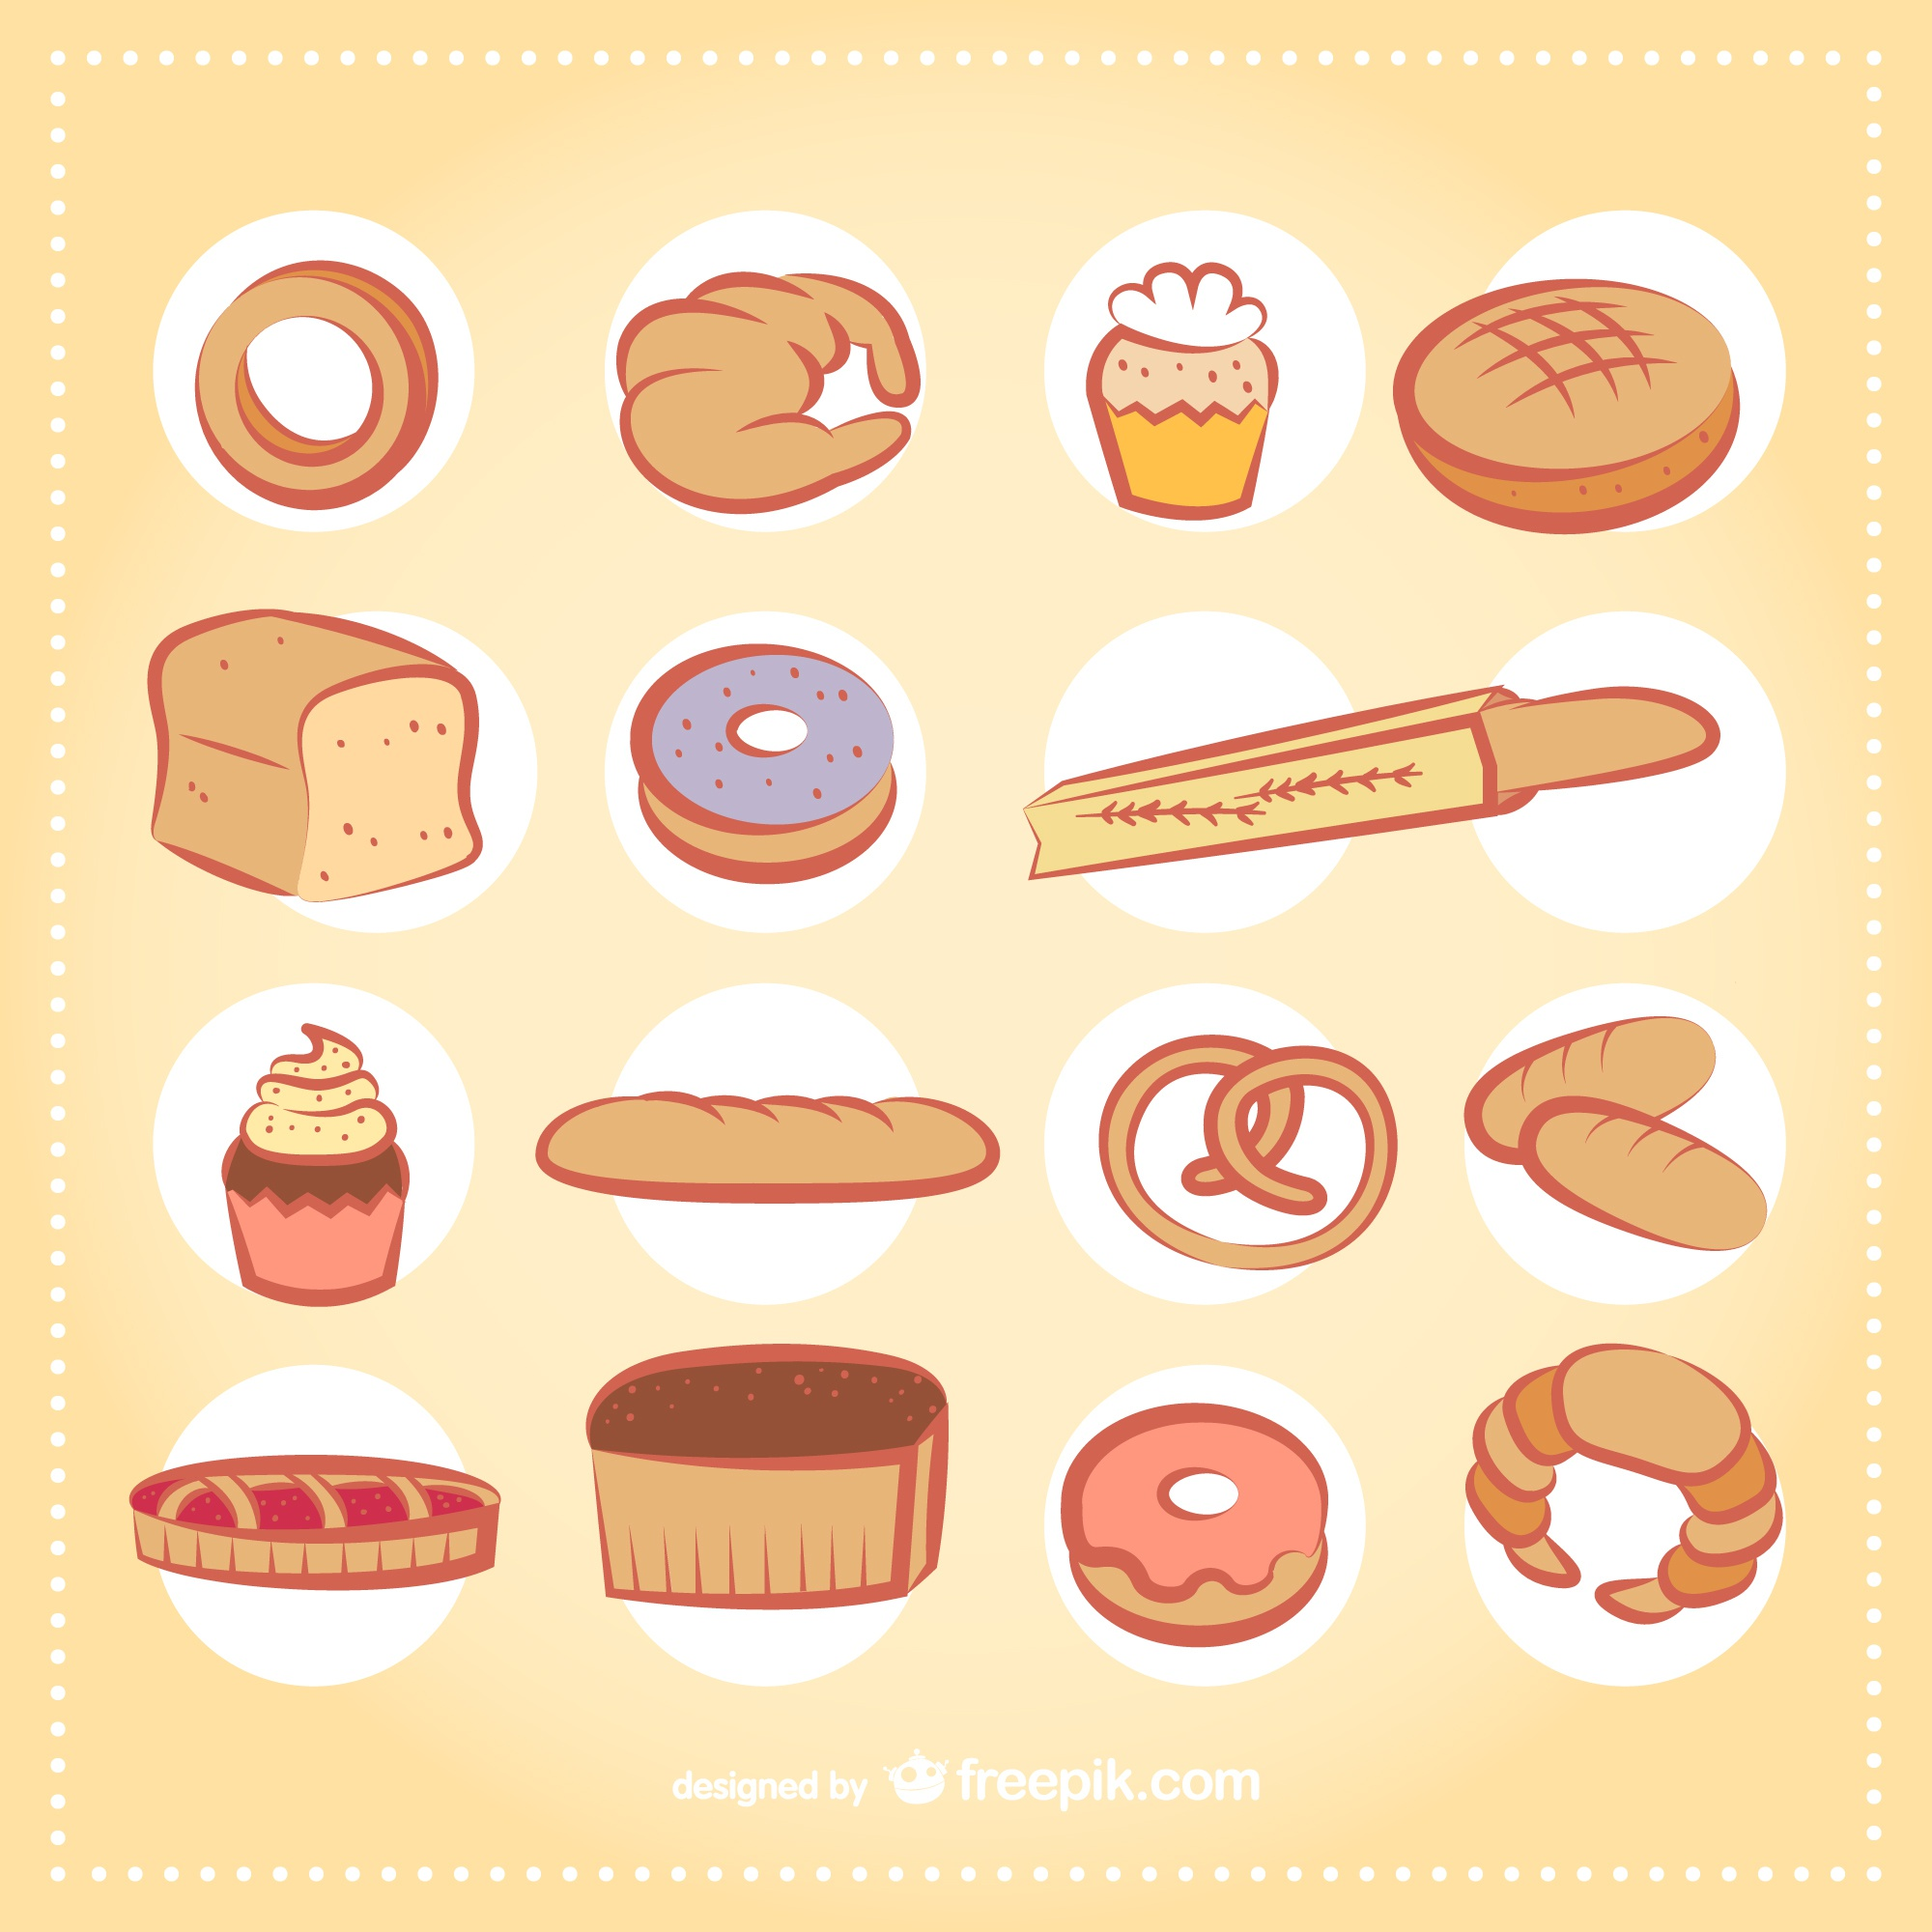 Bakery products pack